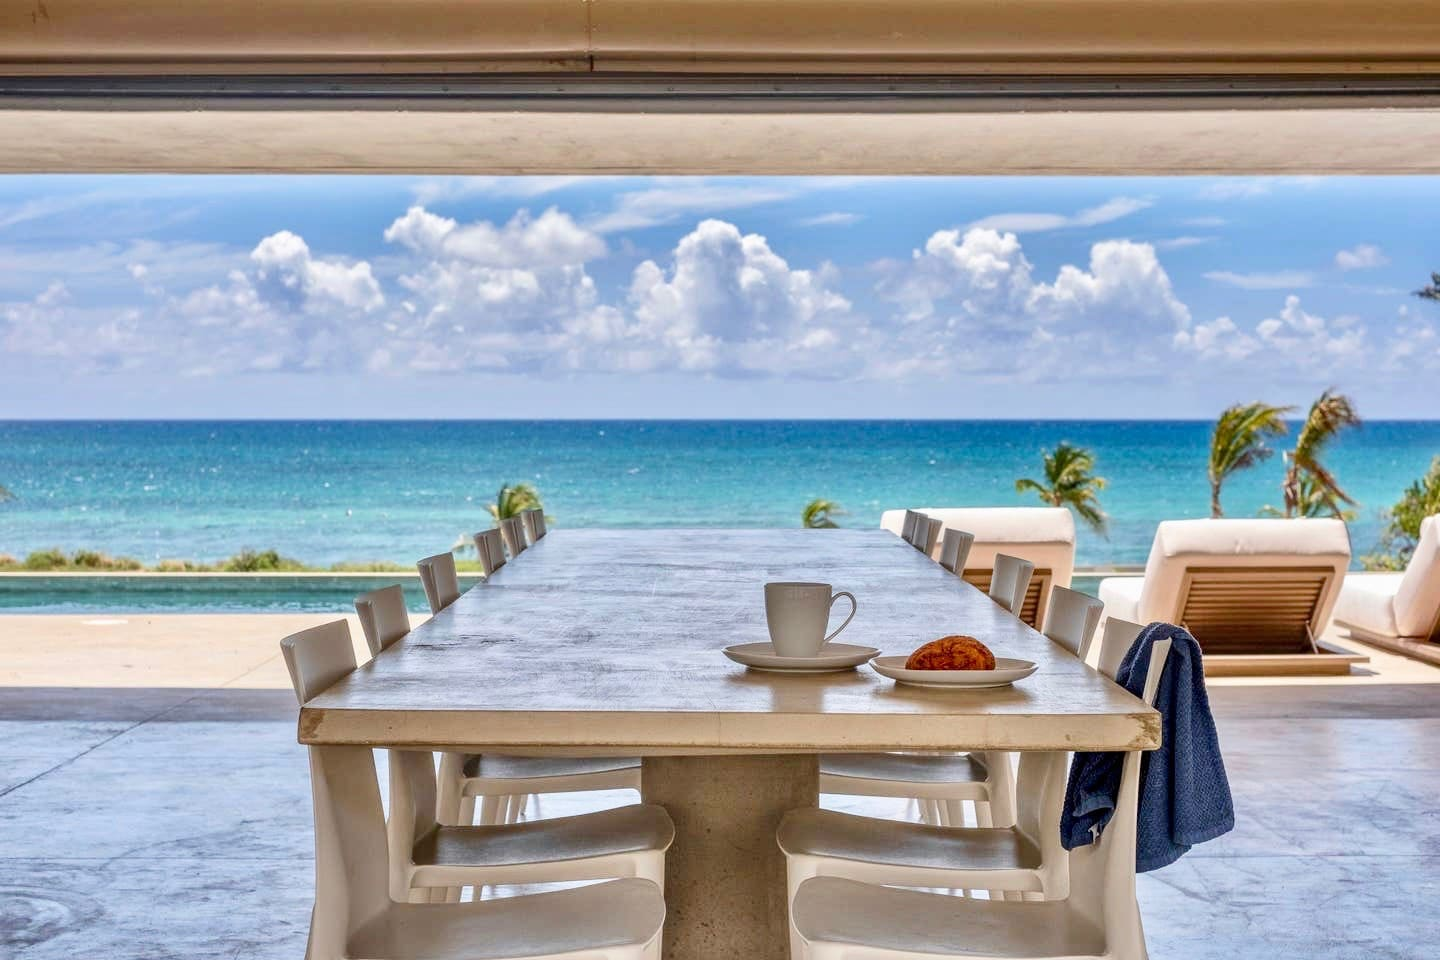 Built in concrete dining room table with seating for 12 and water views to die for.